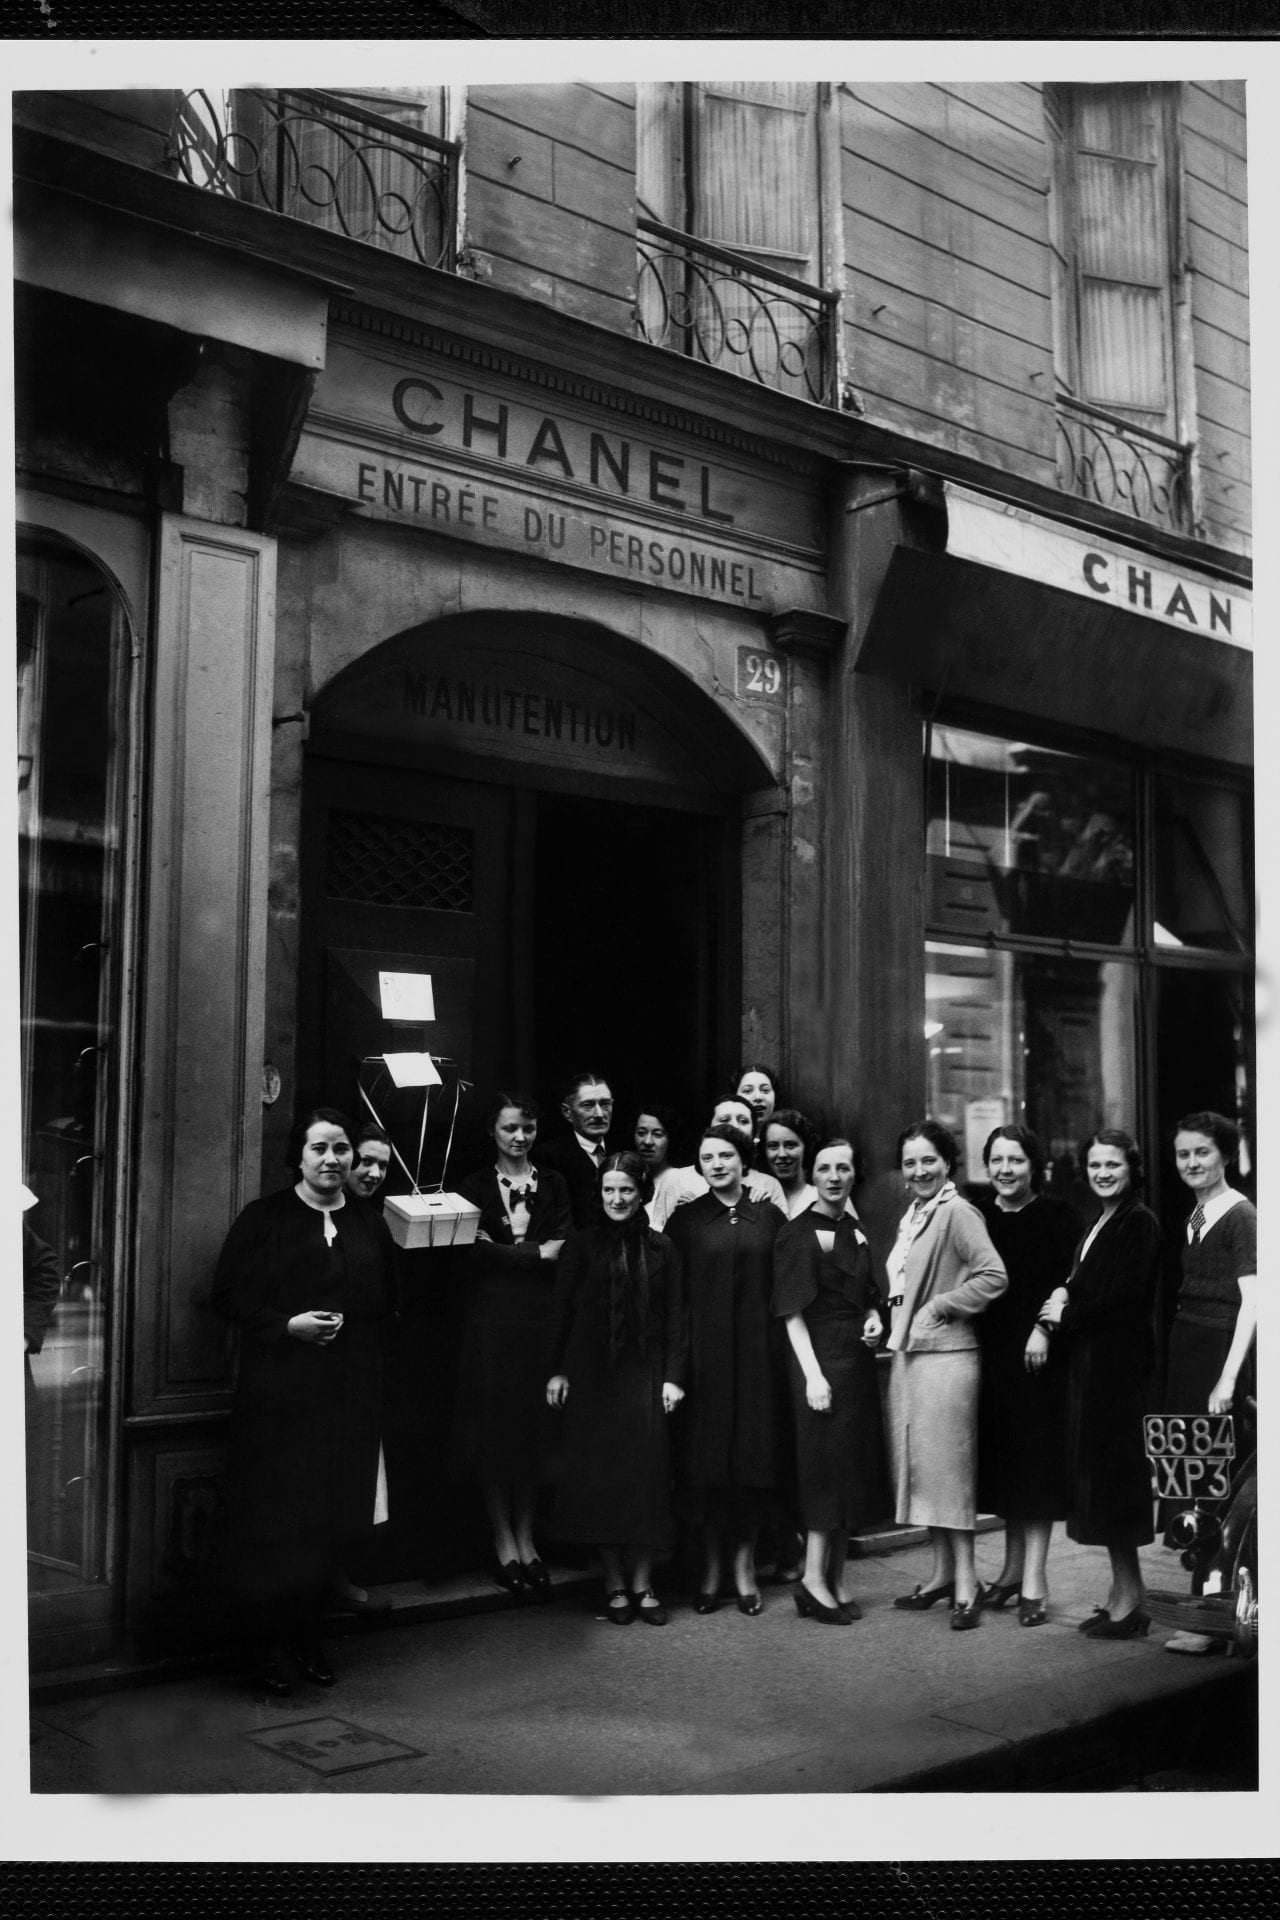 Strike In Chanel Fashion House In Paris On 1938